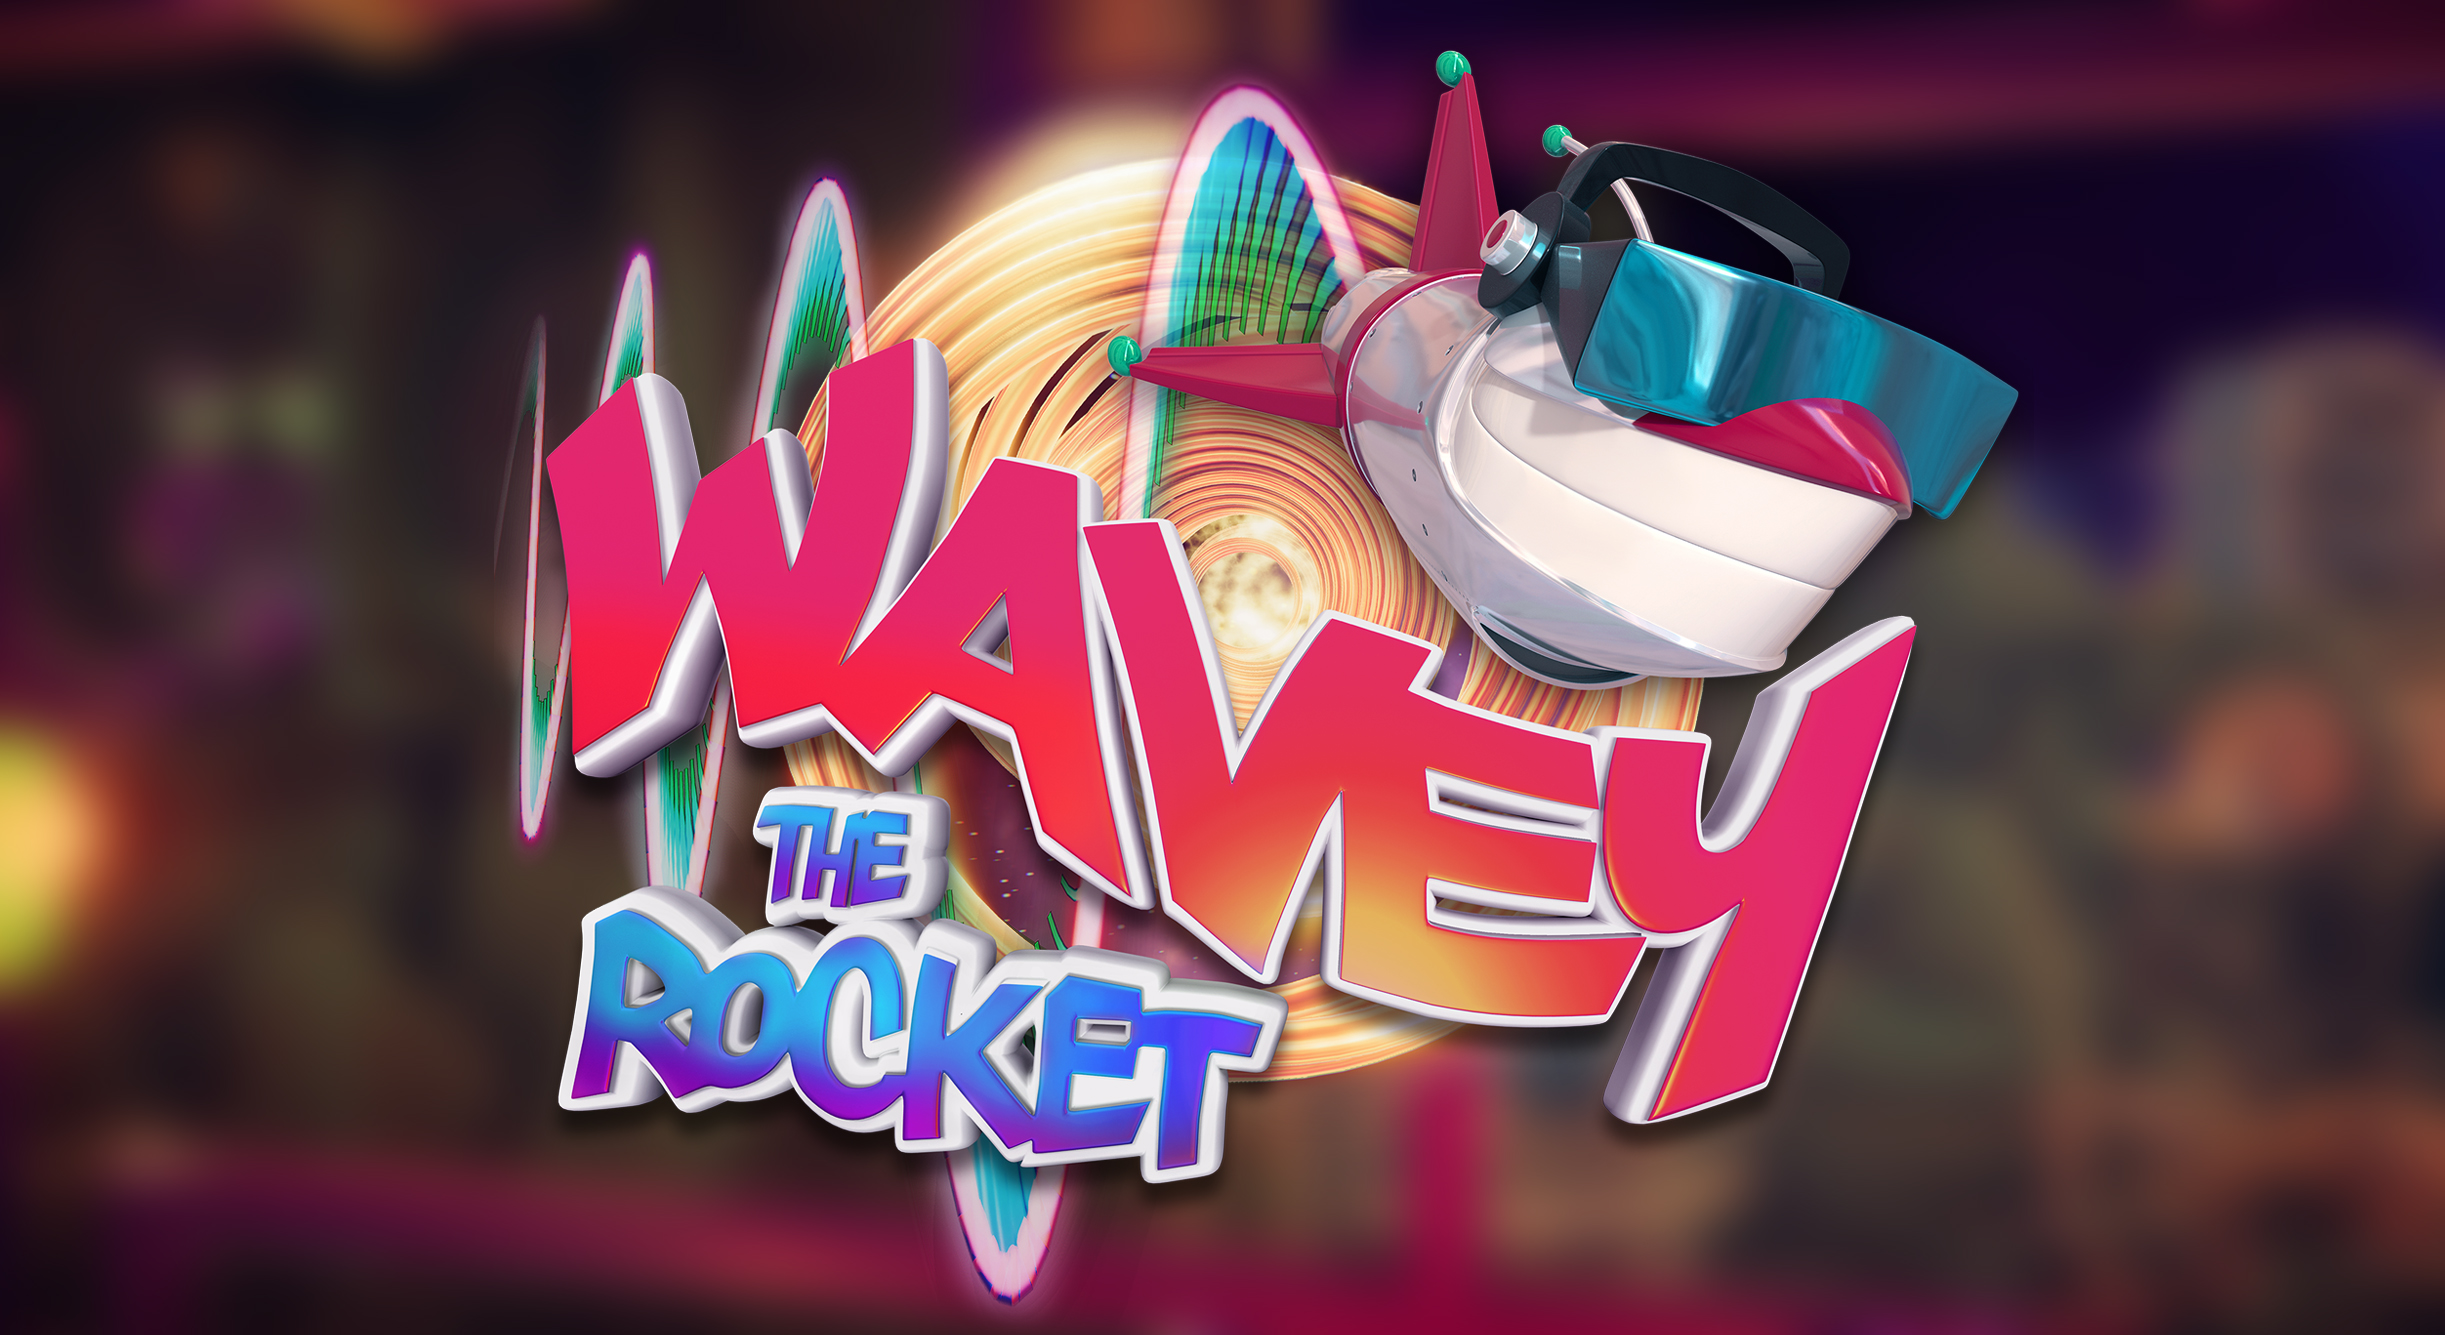 - Guide Wavey the Rocket on his galactic adventure to defeat The Evil2. Control the wave's shape to navigate our hero through a treacherous gauntlet that only Wavey is equipped to deal with. Taking inspiration from early 90s toys, cartoons and games, Wavey the rocket is a visually unique 3d side-scrolling action arcade game with a Gfunk inspired original soundtrack.